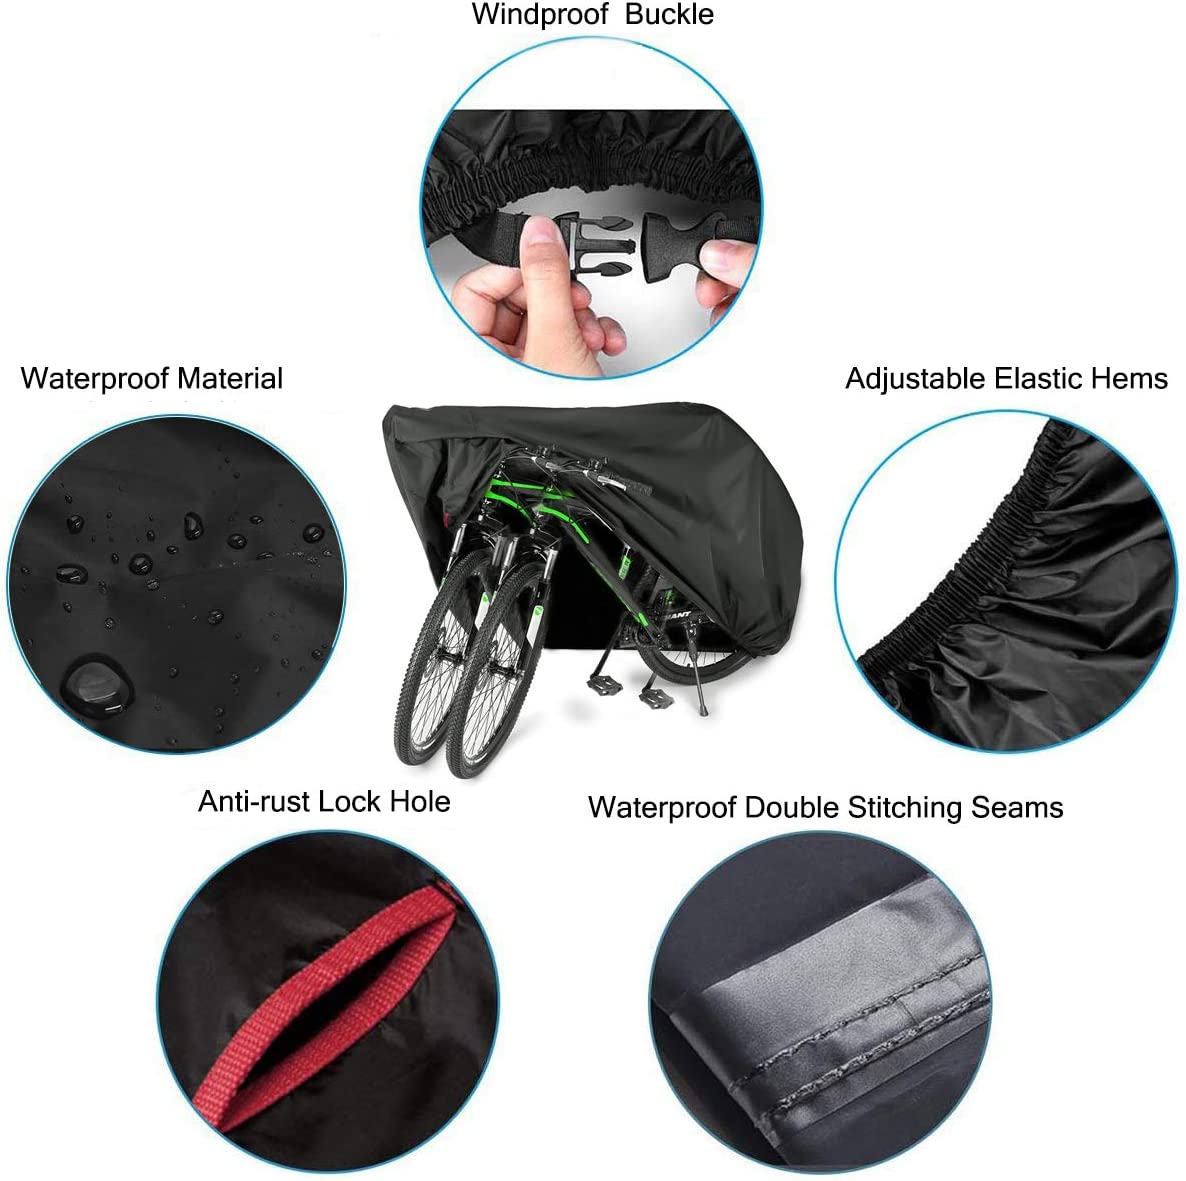 Eugo Bike Cover For 2 Or 3 Bikes Outdoor Waterproof Bicycle Motorcycle Covers Xl